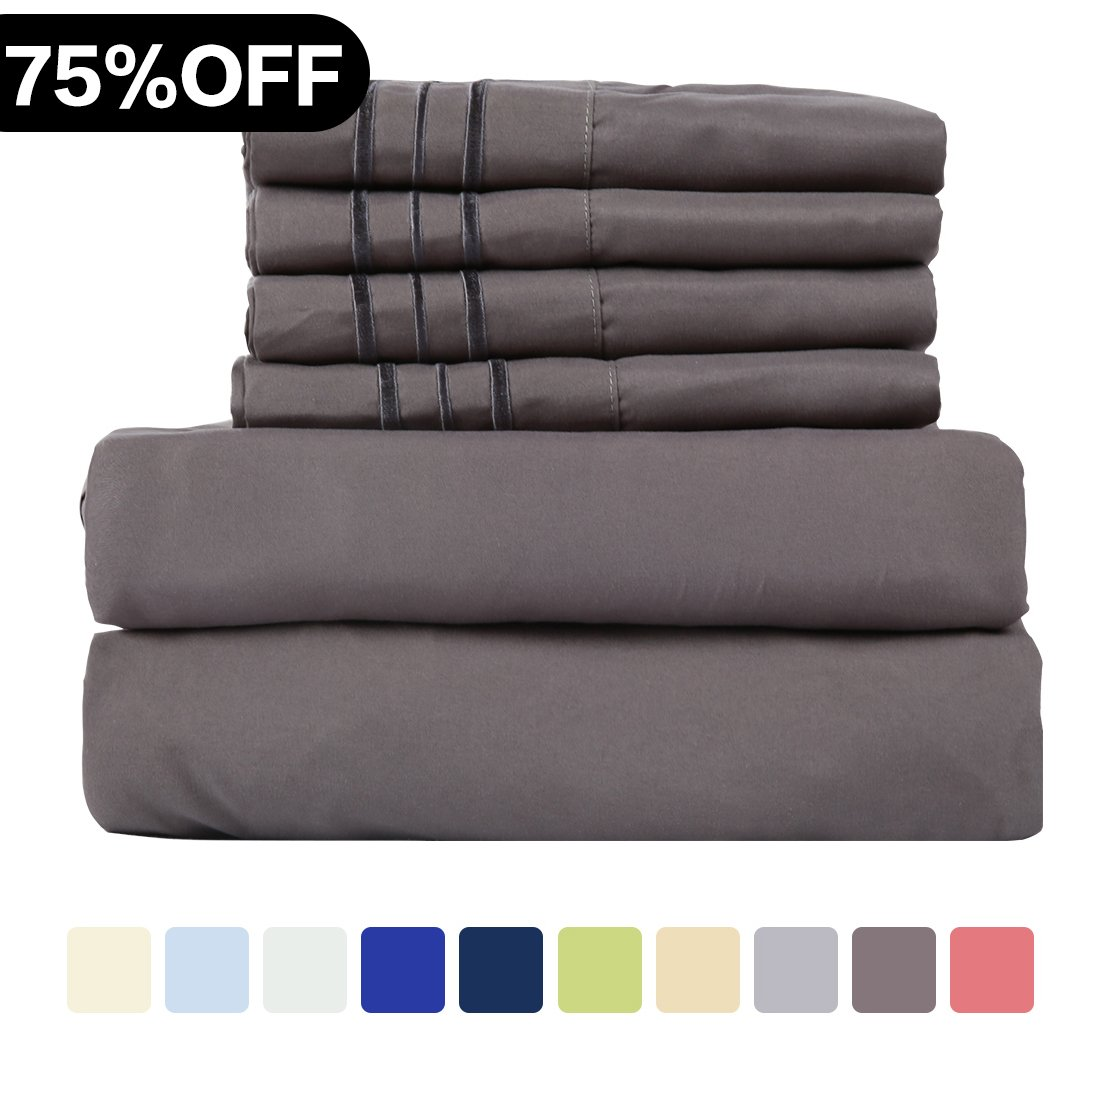 WARM HARBOR Microfiber Sheet Set Super Soft 1800 Thread Count Deep Pocket Bed Sheets Wrinkle, Fade, Stain Resistant Hypoallergenic -4 Piece(Dark Grey, Twin XL)